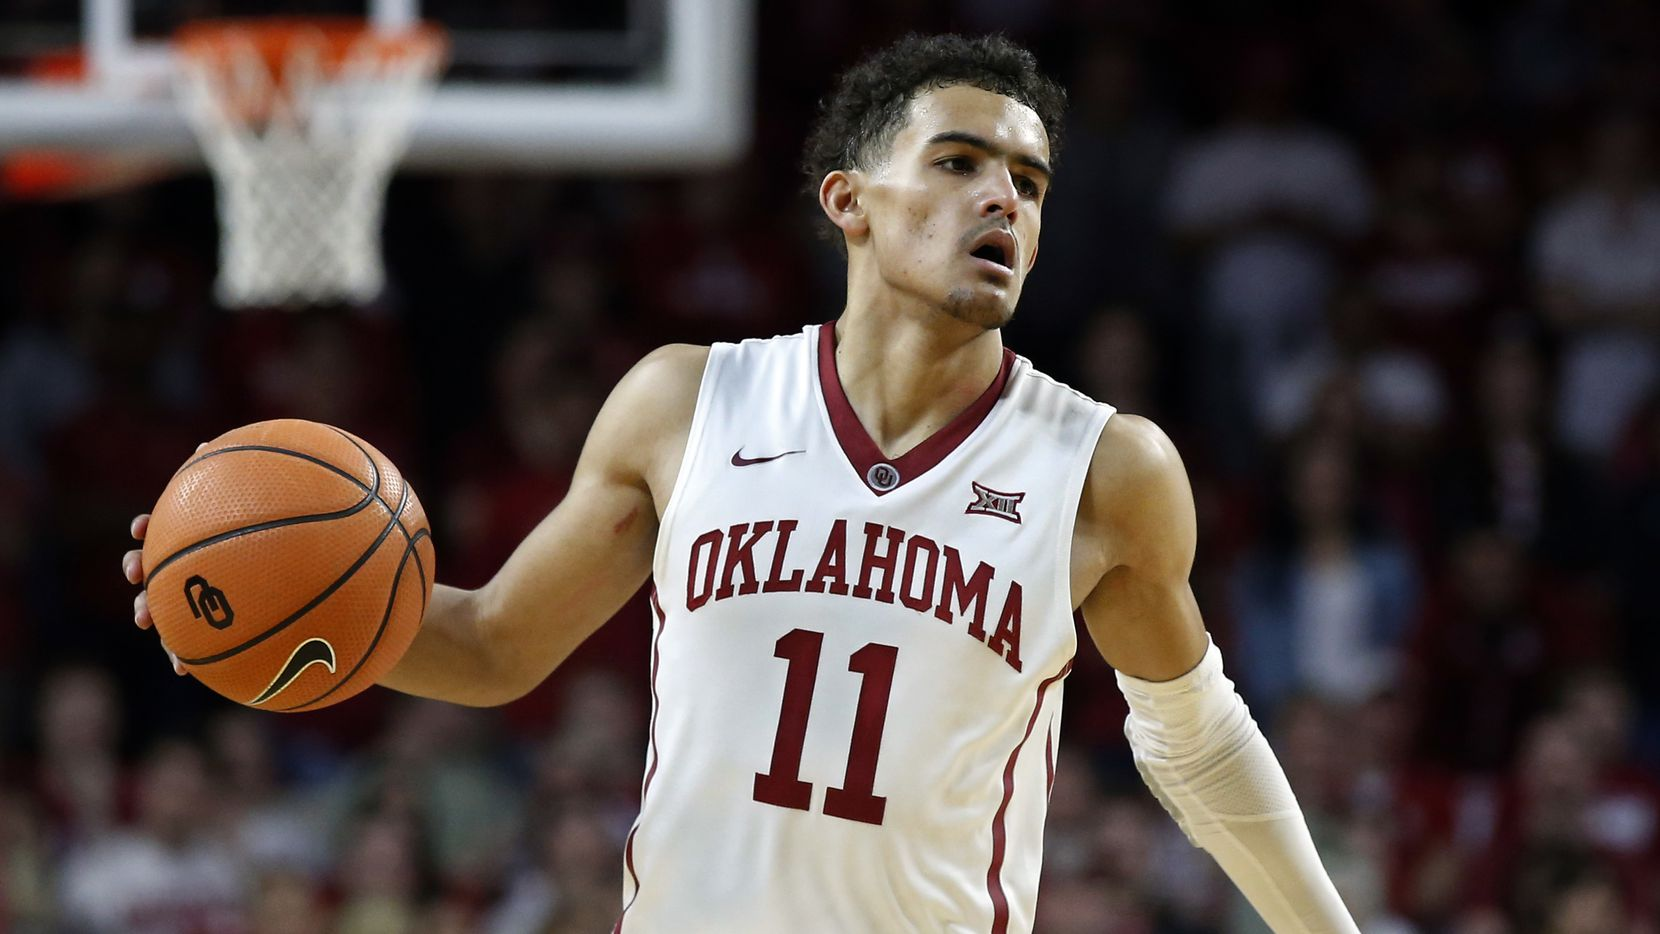 FILE - In this Feb. 17, 2018, file photo, Oklahoma guard Trae Young (11) brings the ball upcourt during the second half of an NCAA college basketball game against Texas in Norman, Okla.  (AP Photo/Sue Ogrocki, File)